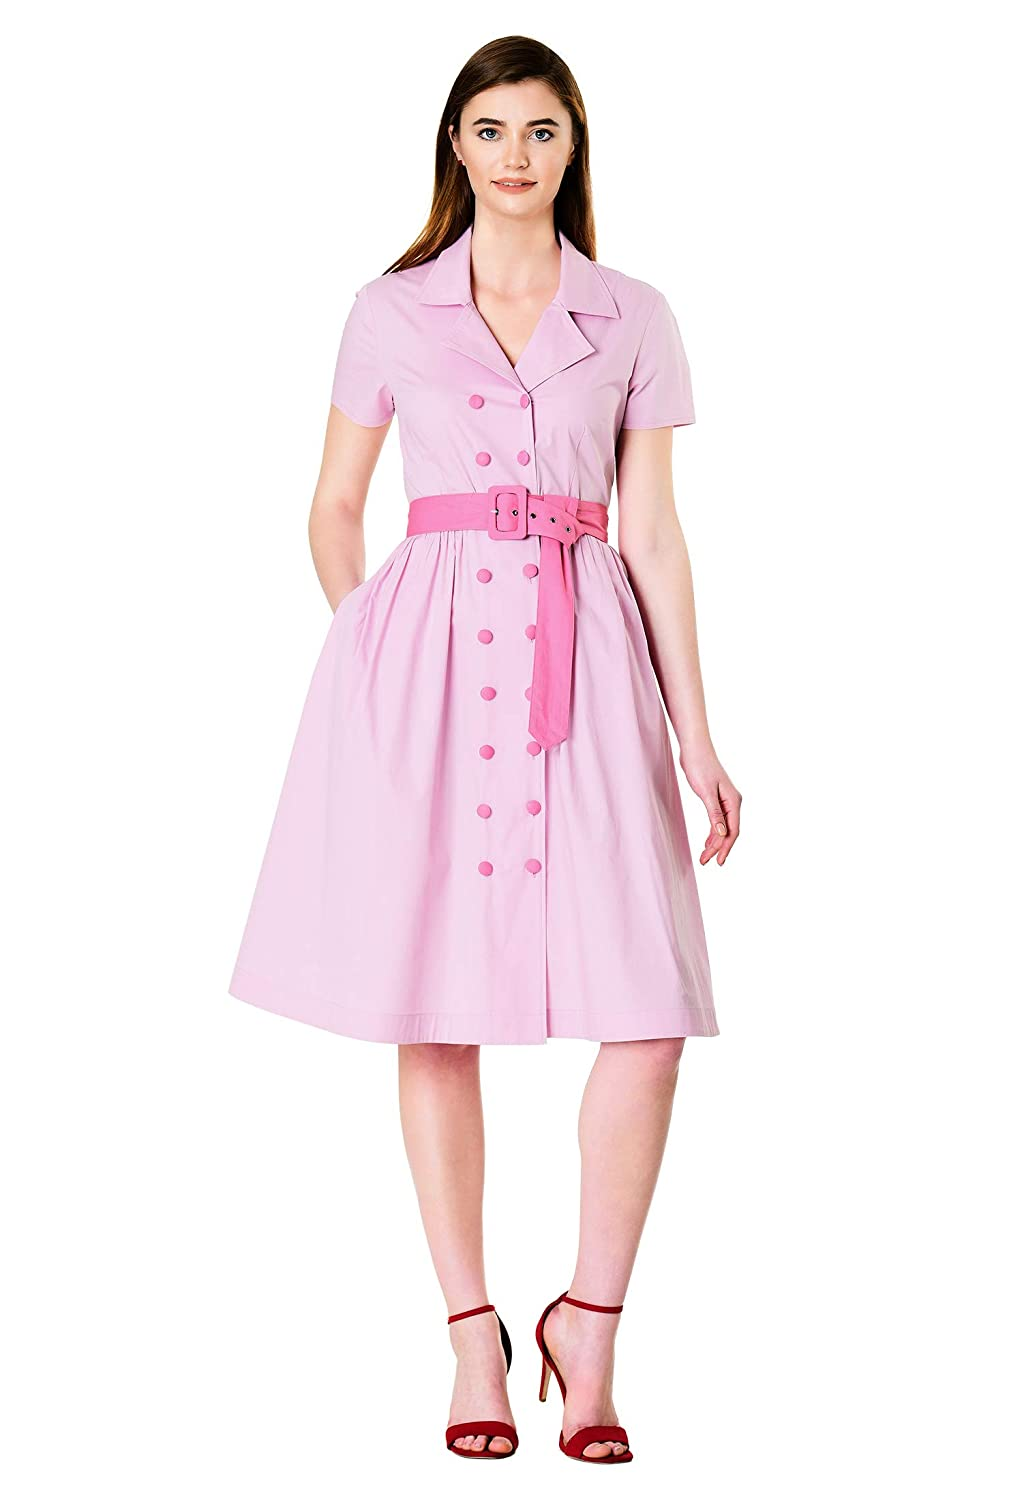 1950s Costumes- Poodle Skirts, Grease, Monroe, Pin Up, I Love Lucy eShakti Womens Contrast Button poplin Belted Shirtdress $69.95 AT vintagedancer.com